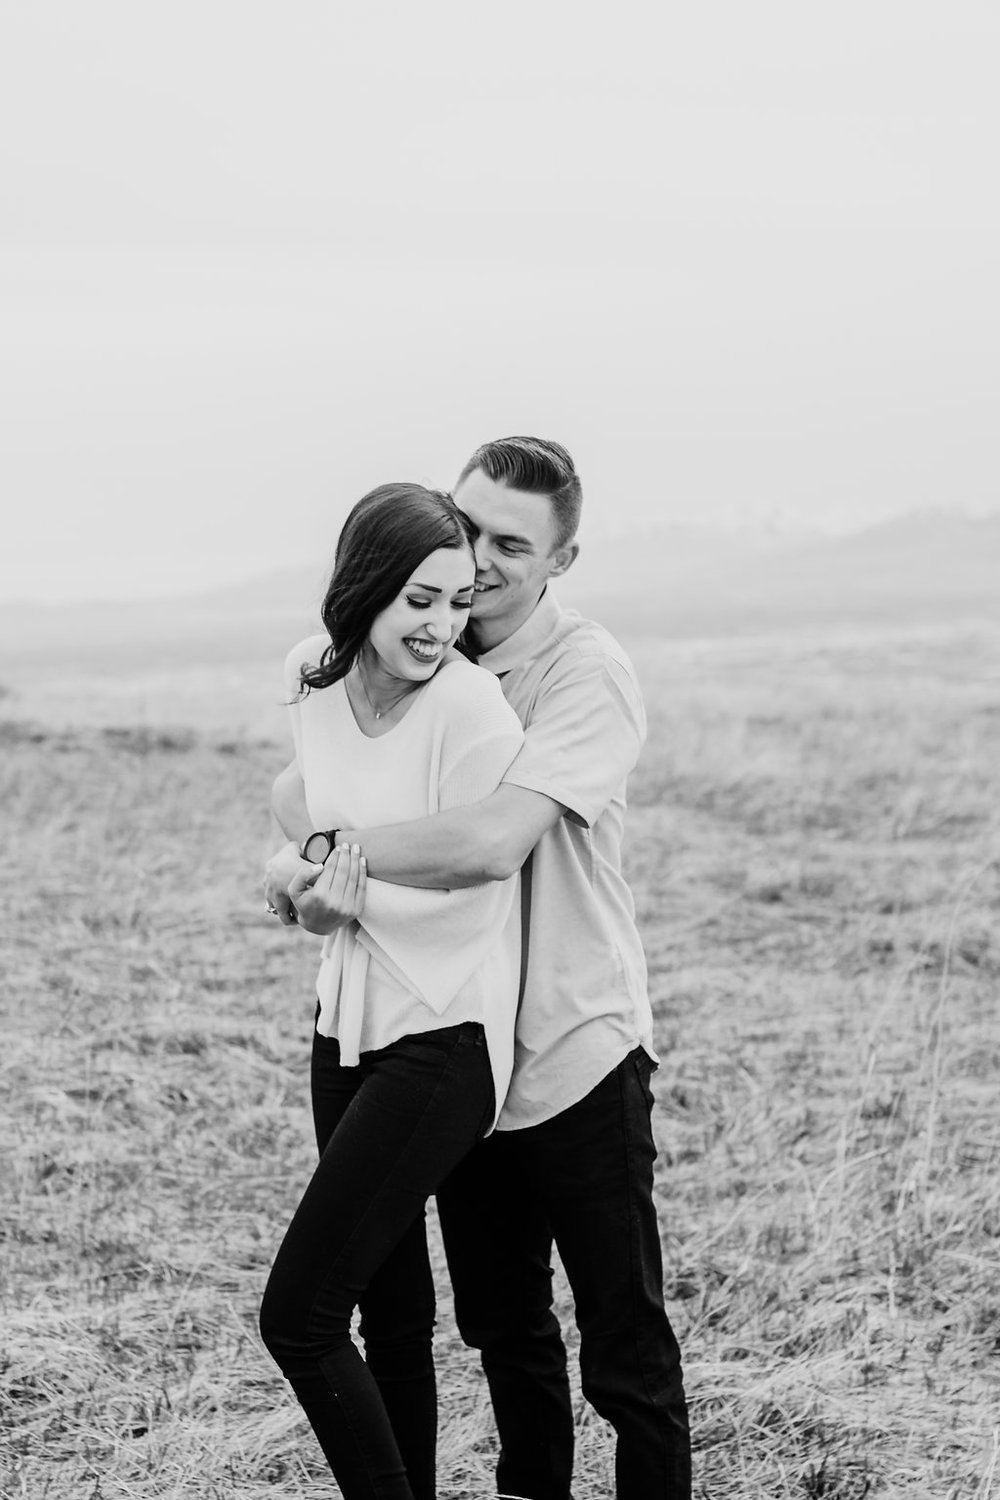 calli richards engagement pictures black and white romantic natural posing engagement photography salt lake city